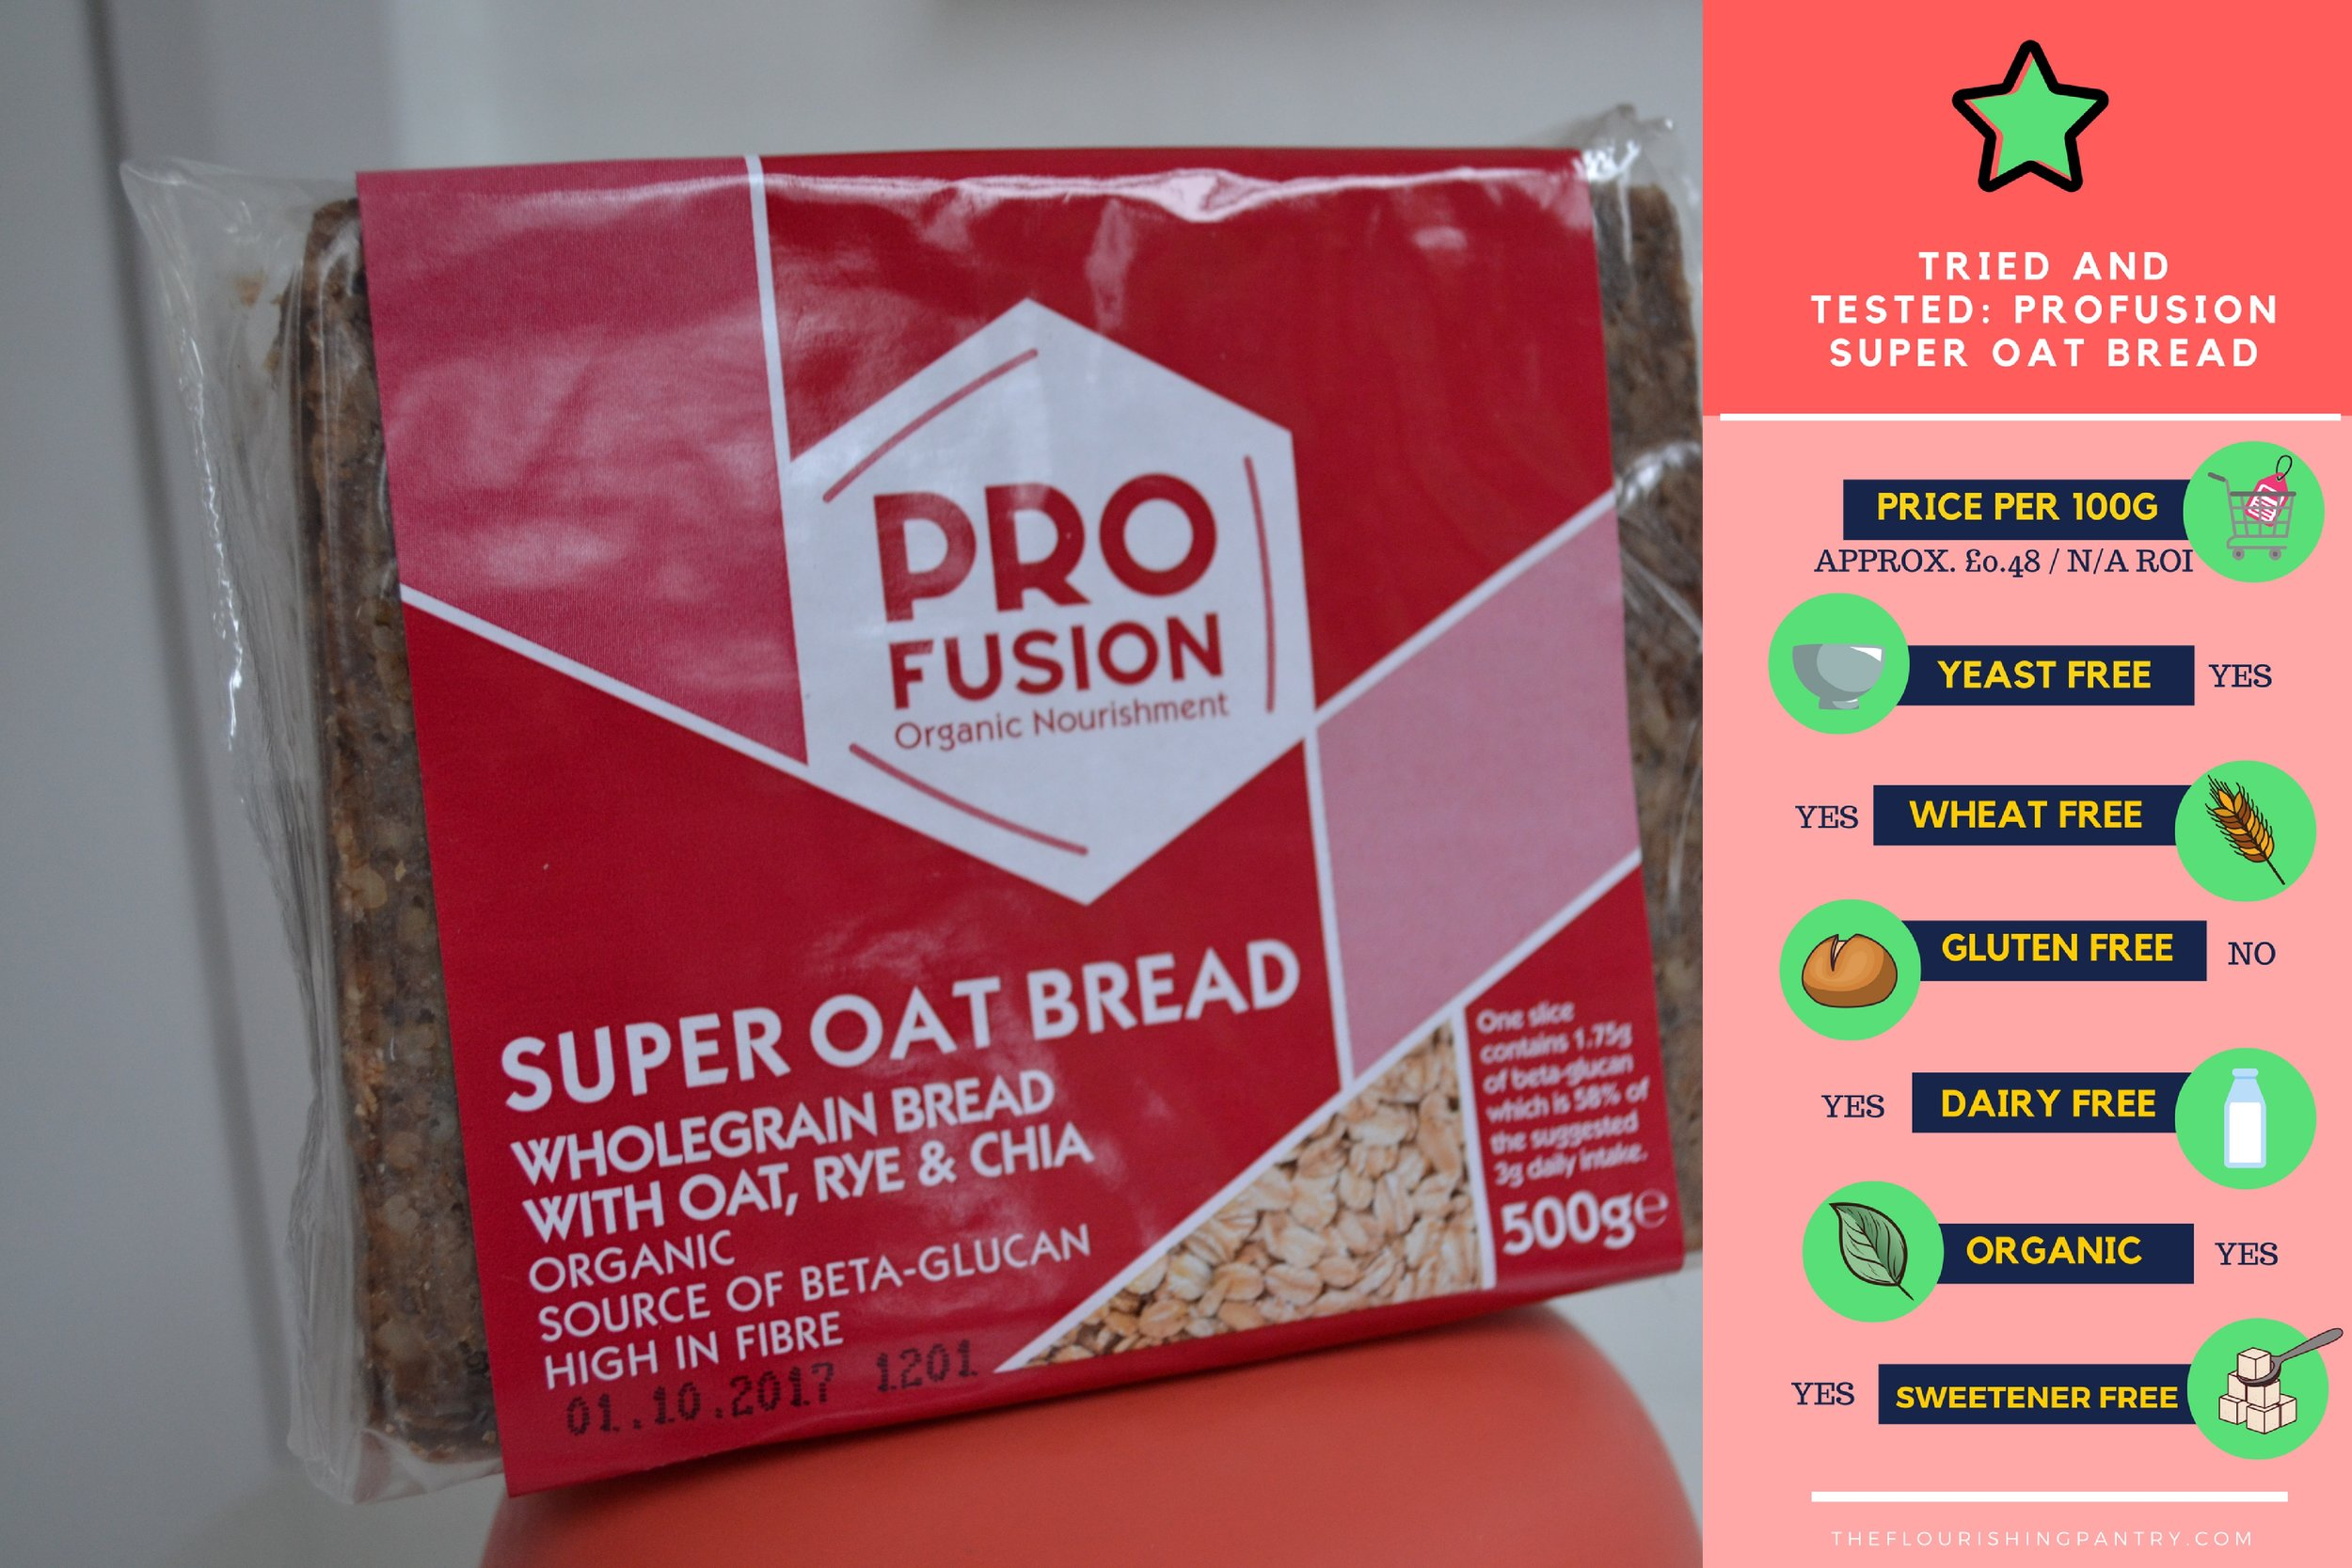 Profusion Oat Bread | The Flourishing Pantry | yeast free diet blog